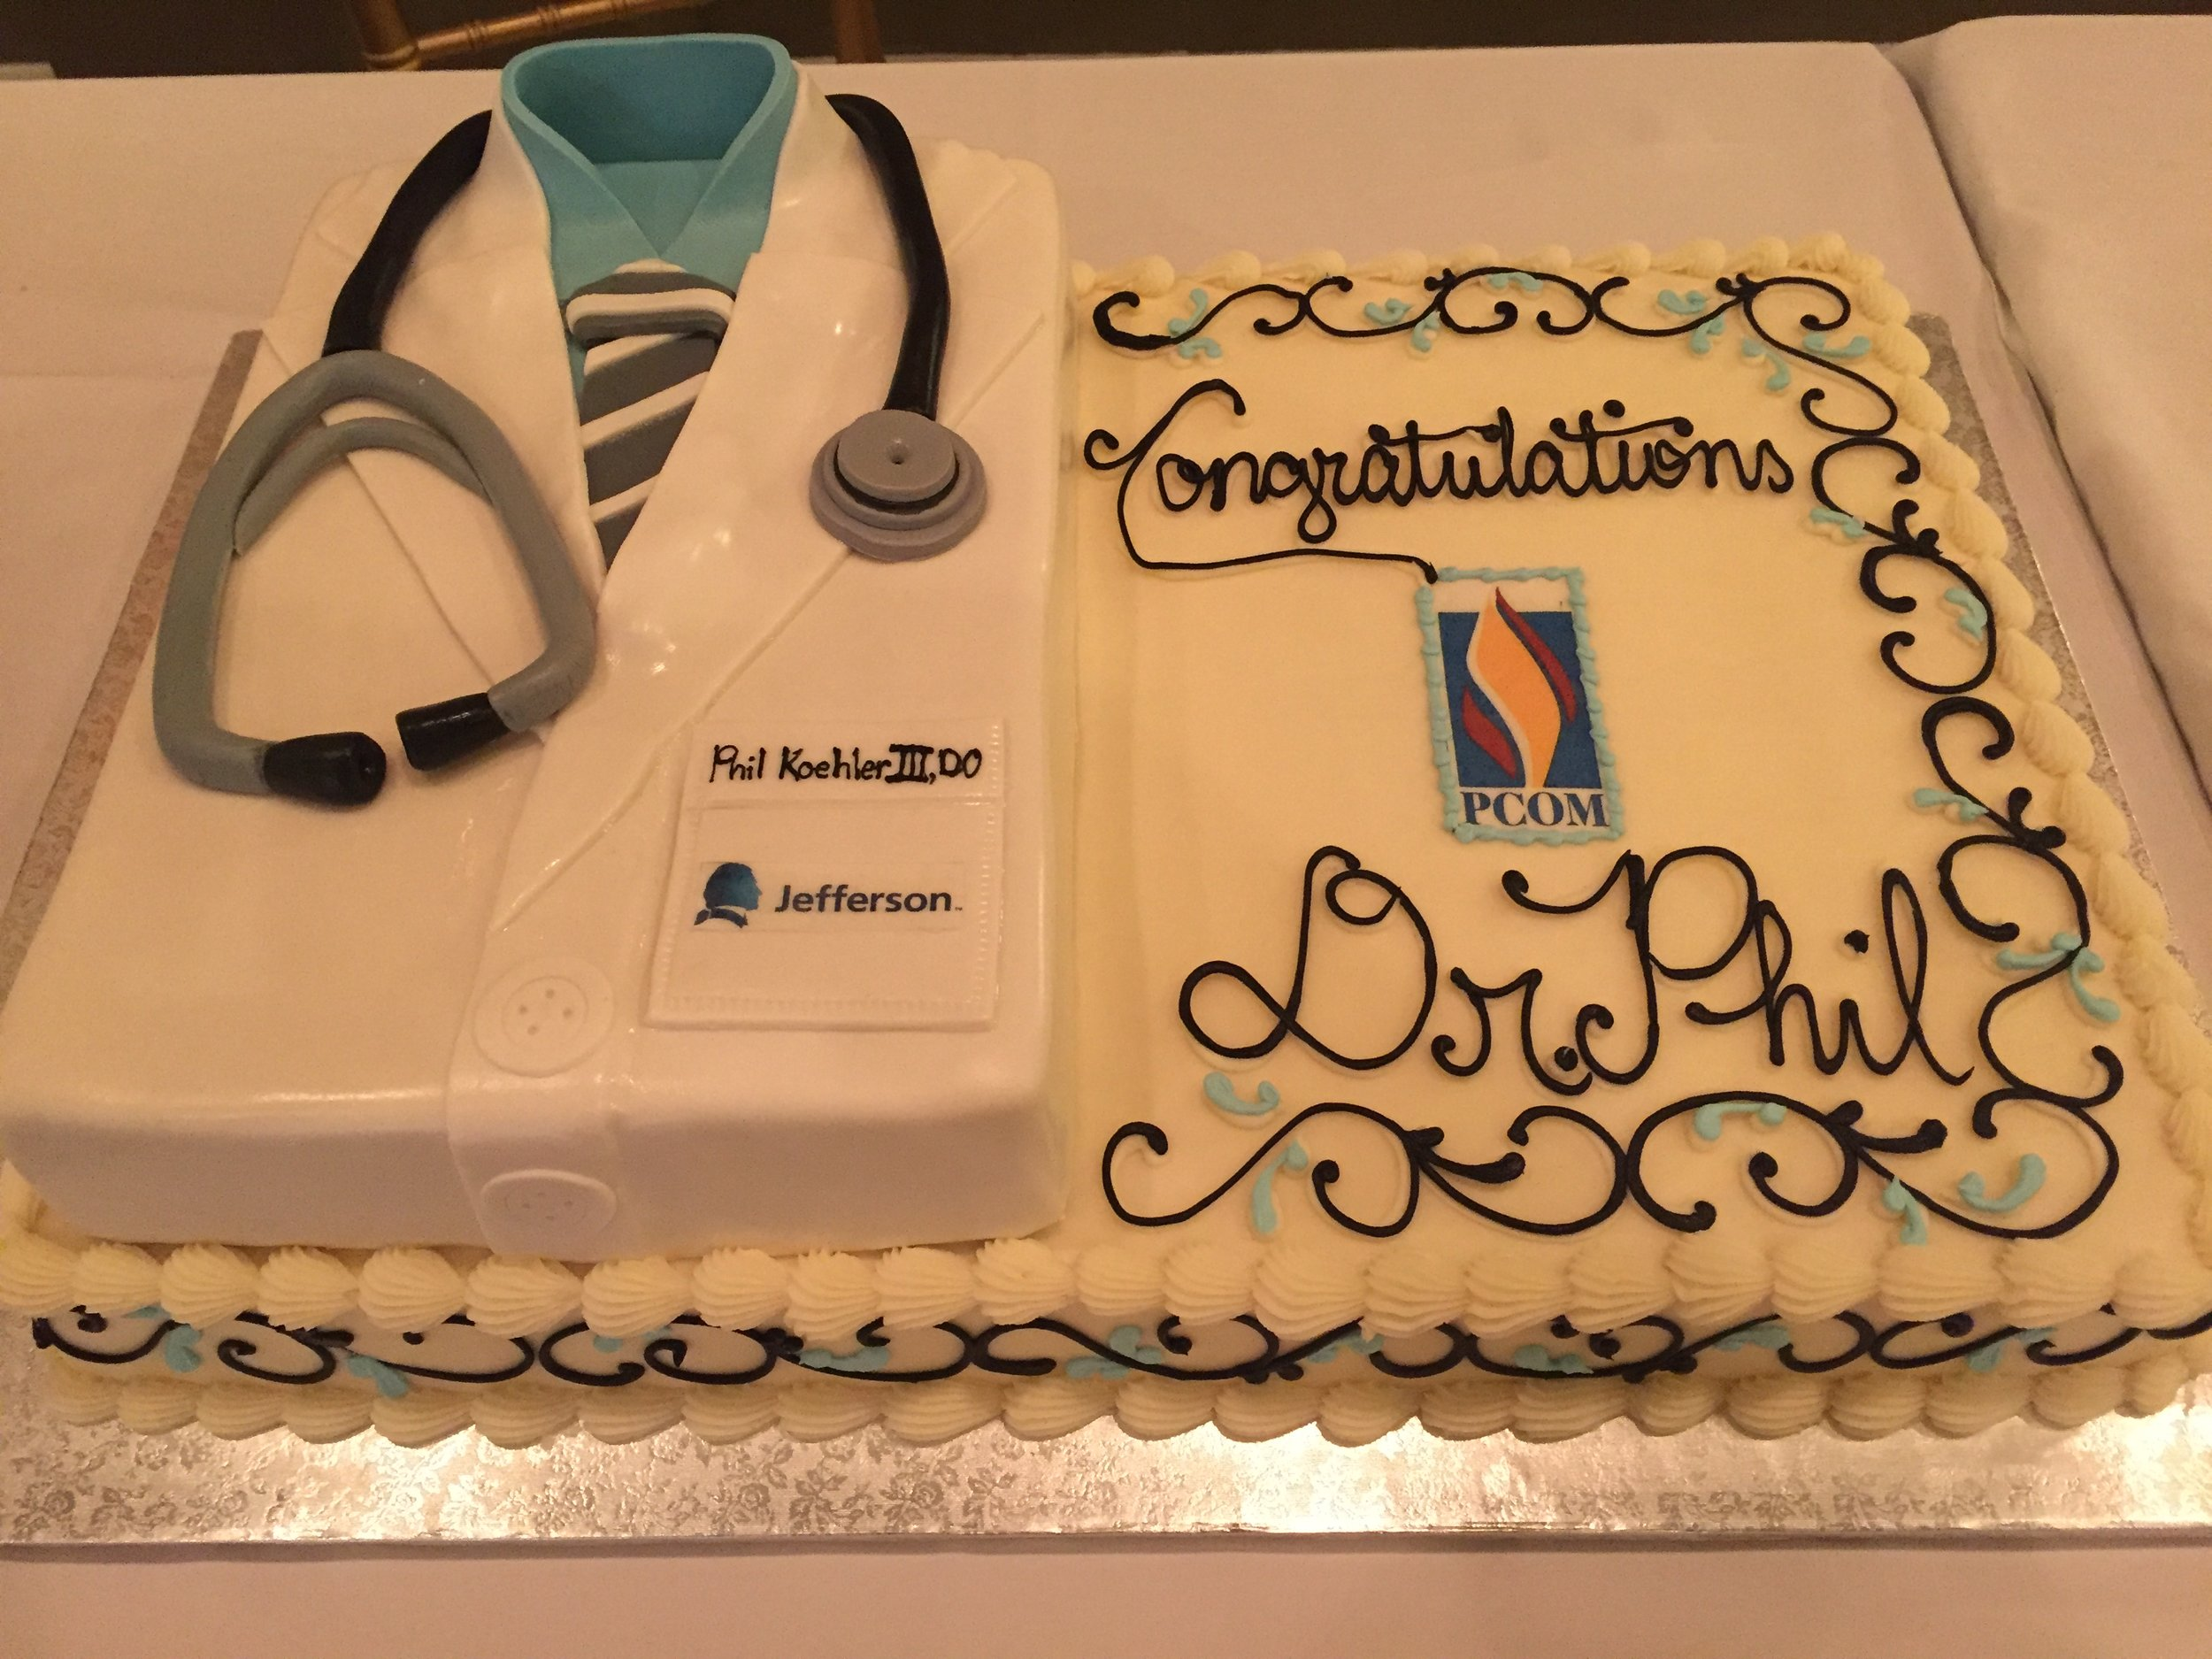 Congratulations Cake for the Doctor